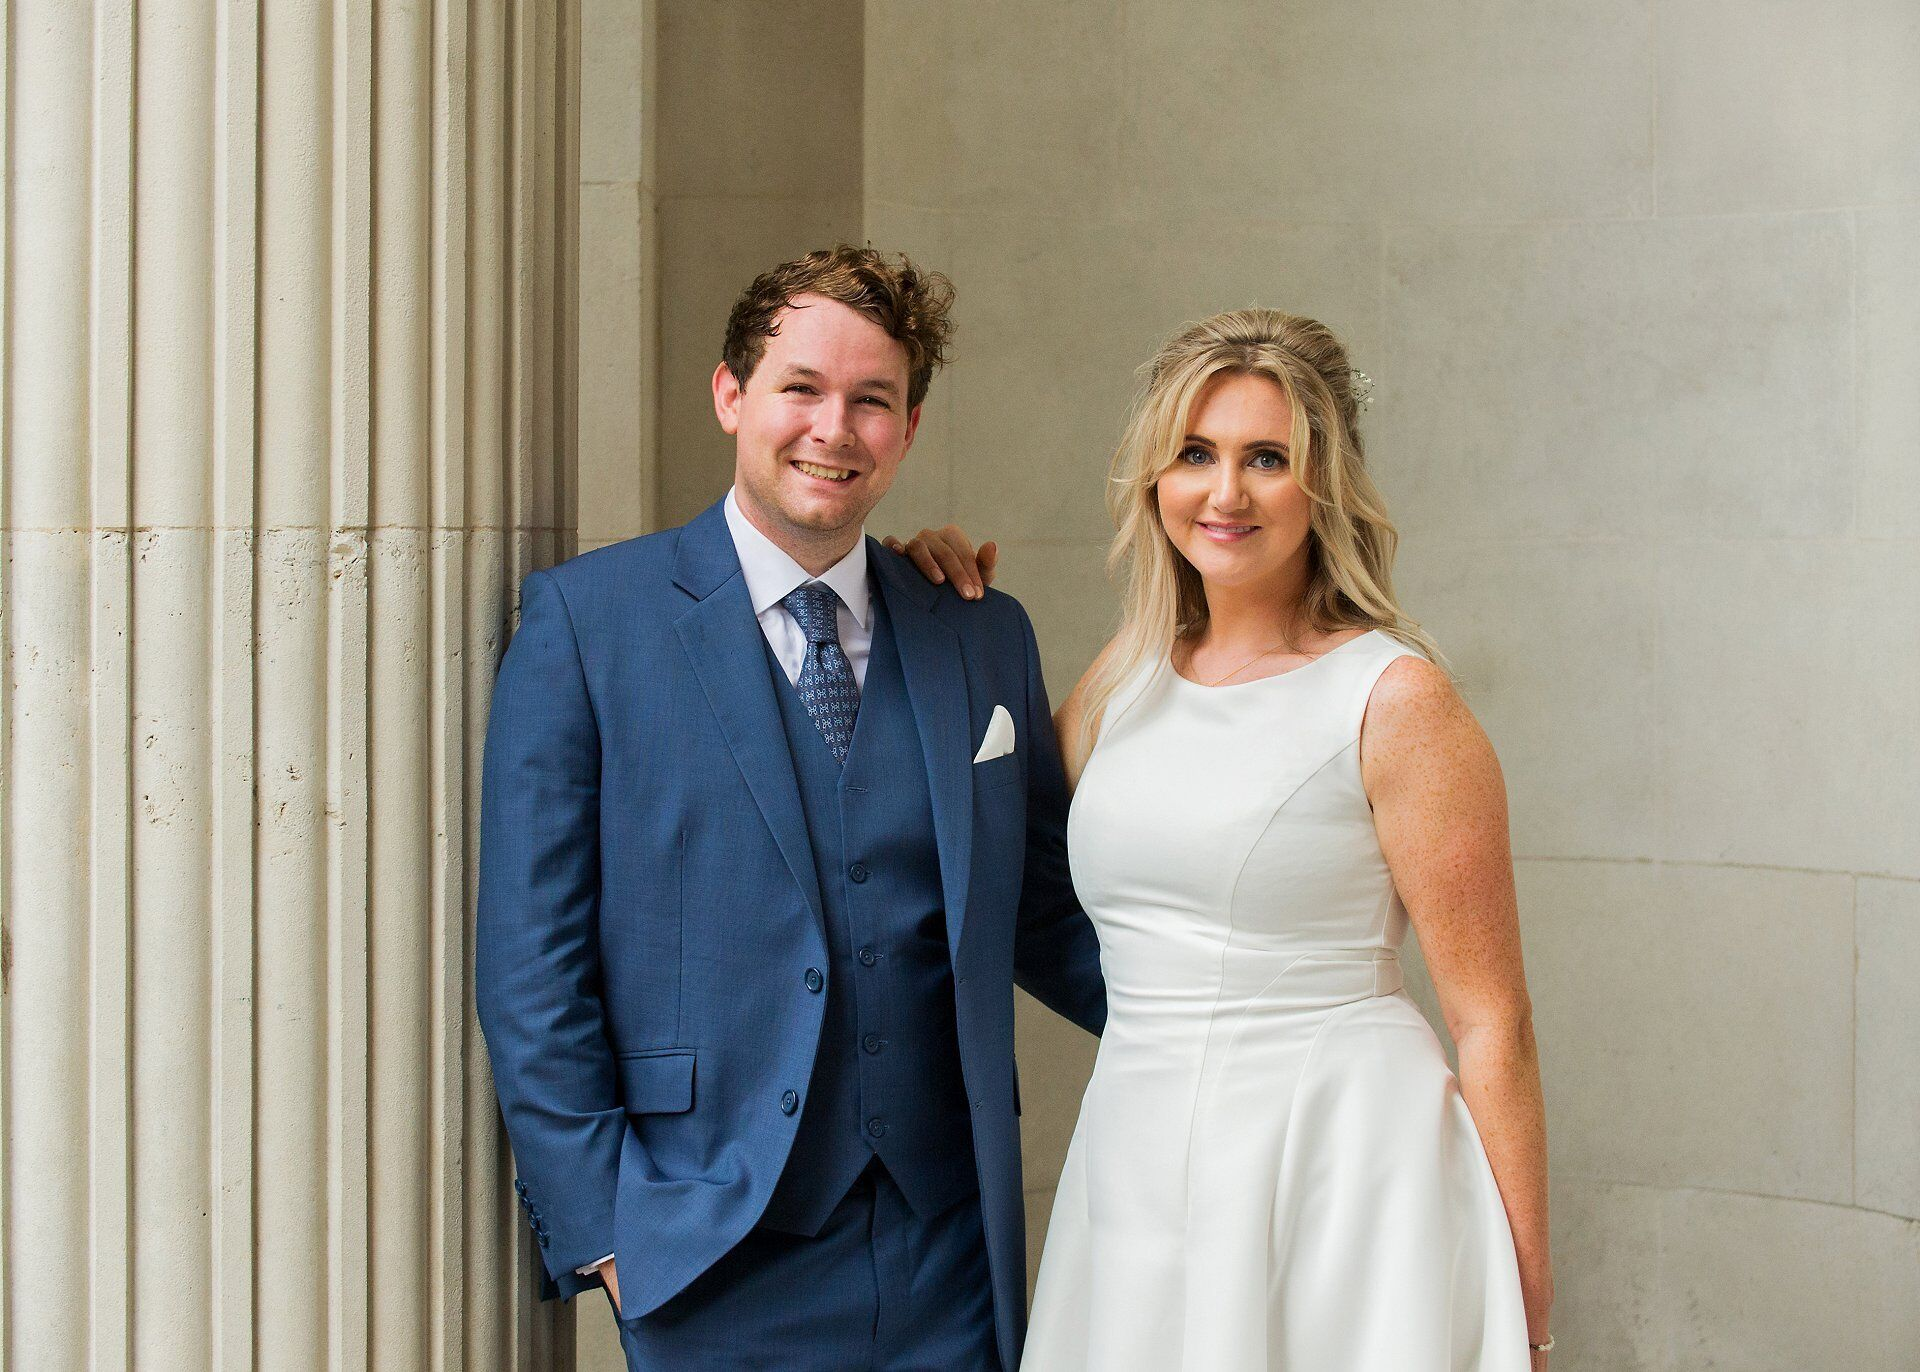 old marylebone town hall wedding photography a bride and groom pose after their 2018 summer heatwave wedding